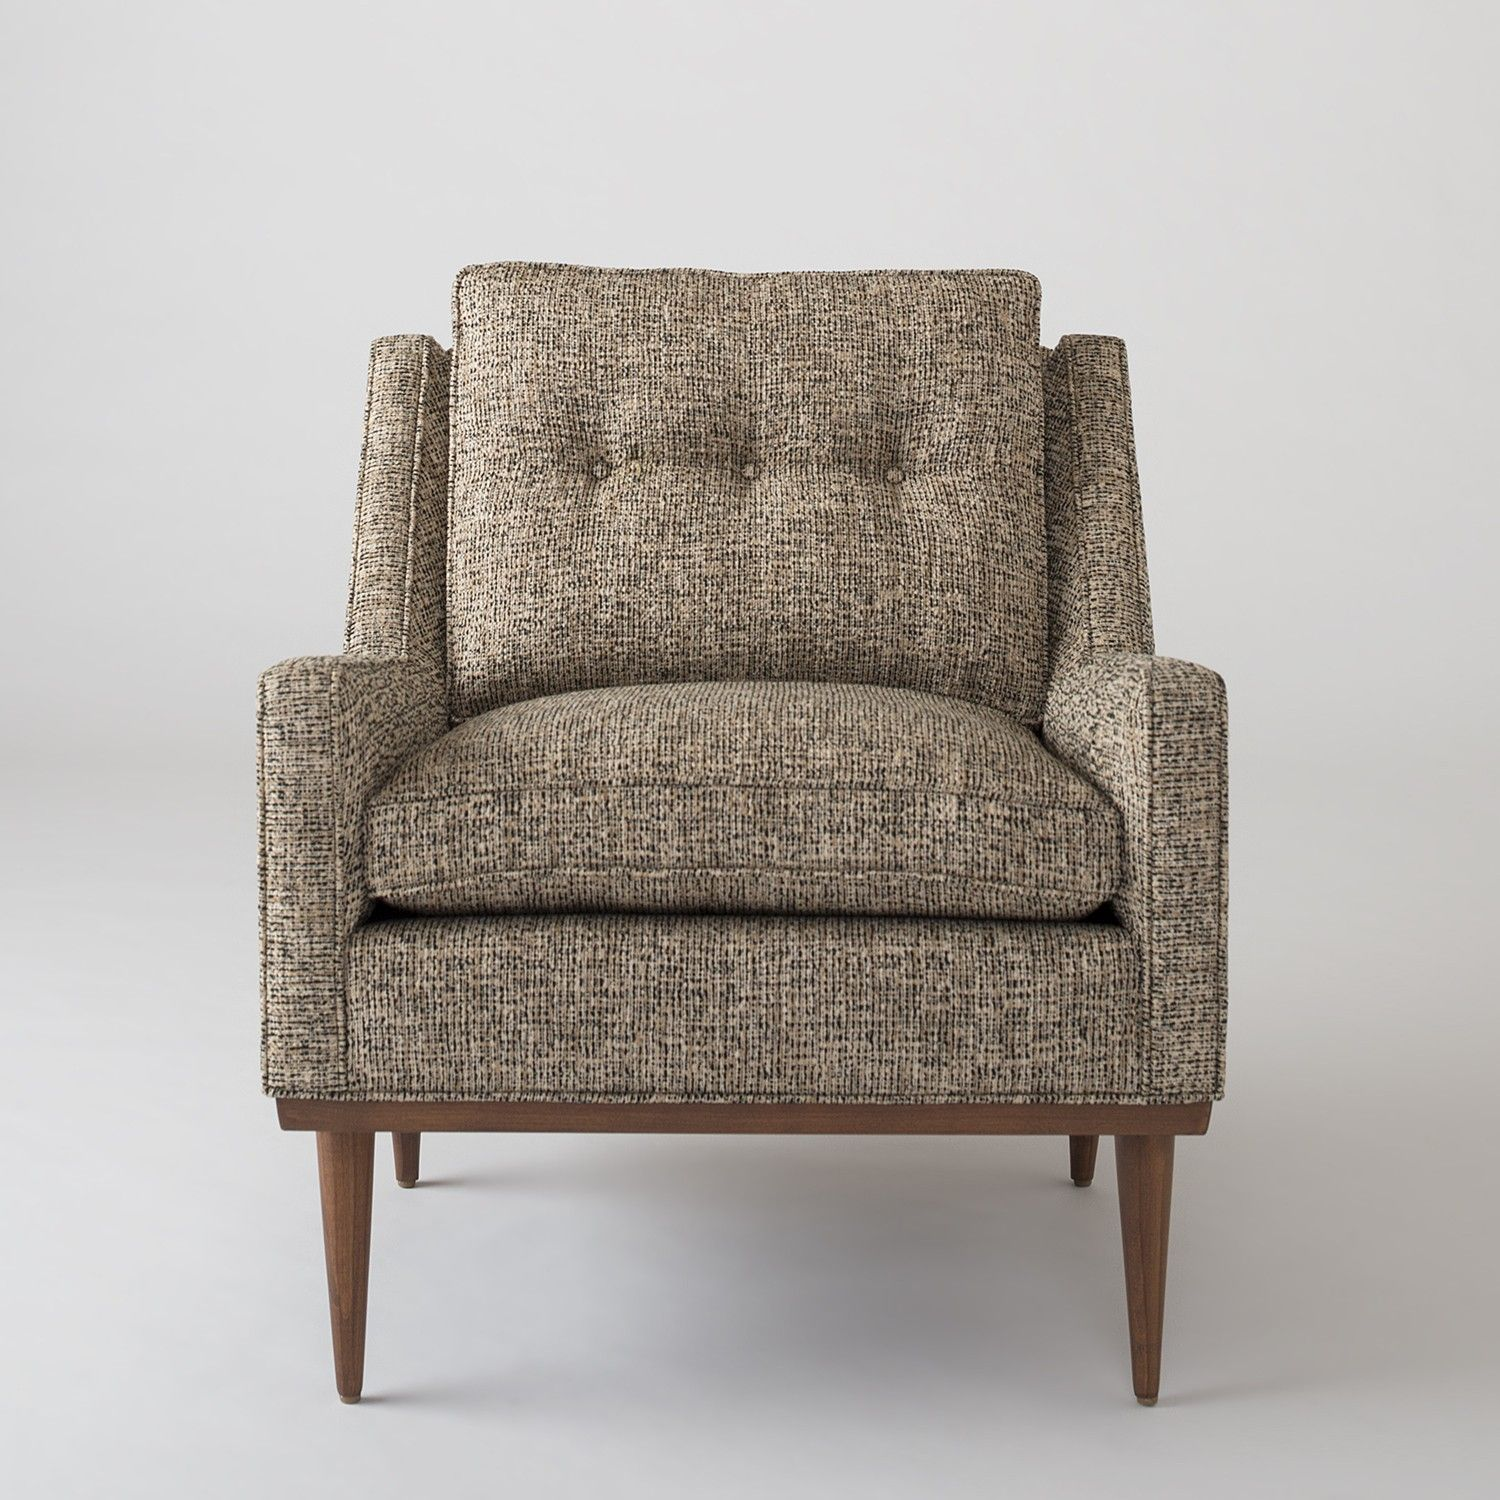 Classic Sofas Loveseats Couches And Chairs Furniture Upholstered Chairs Chair